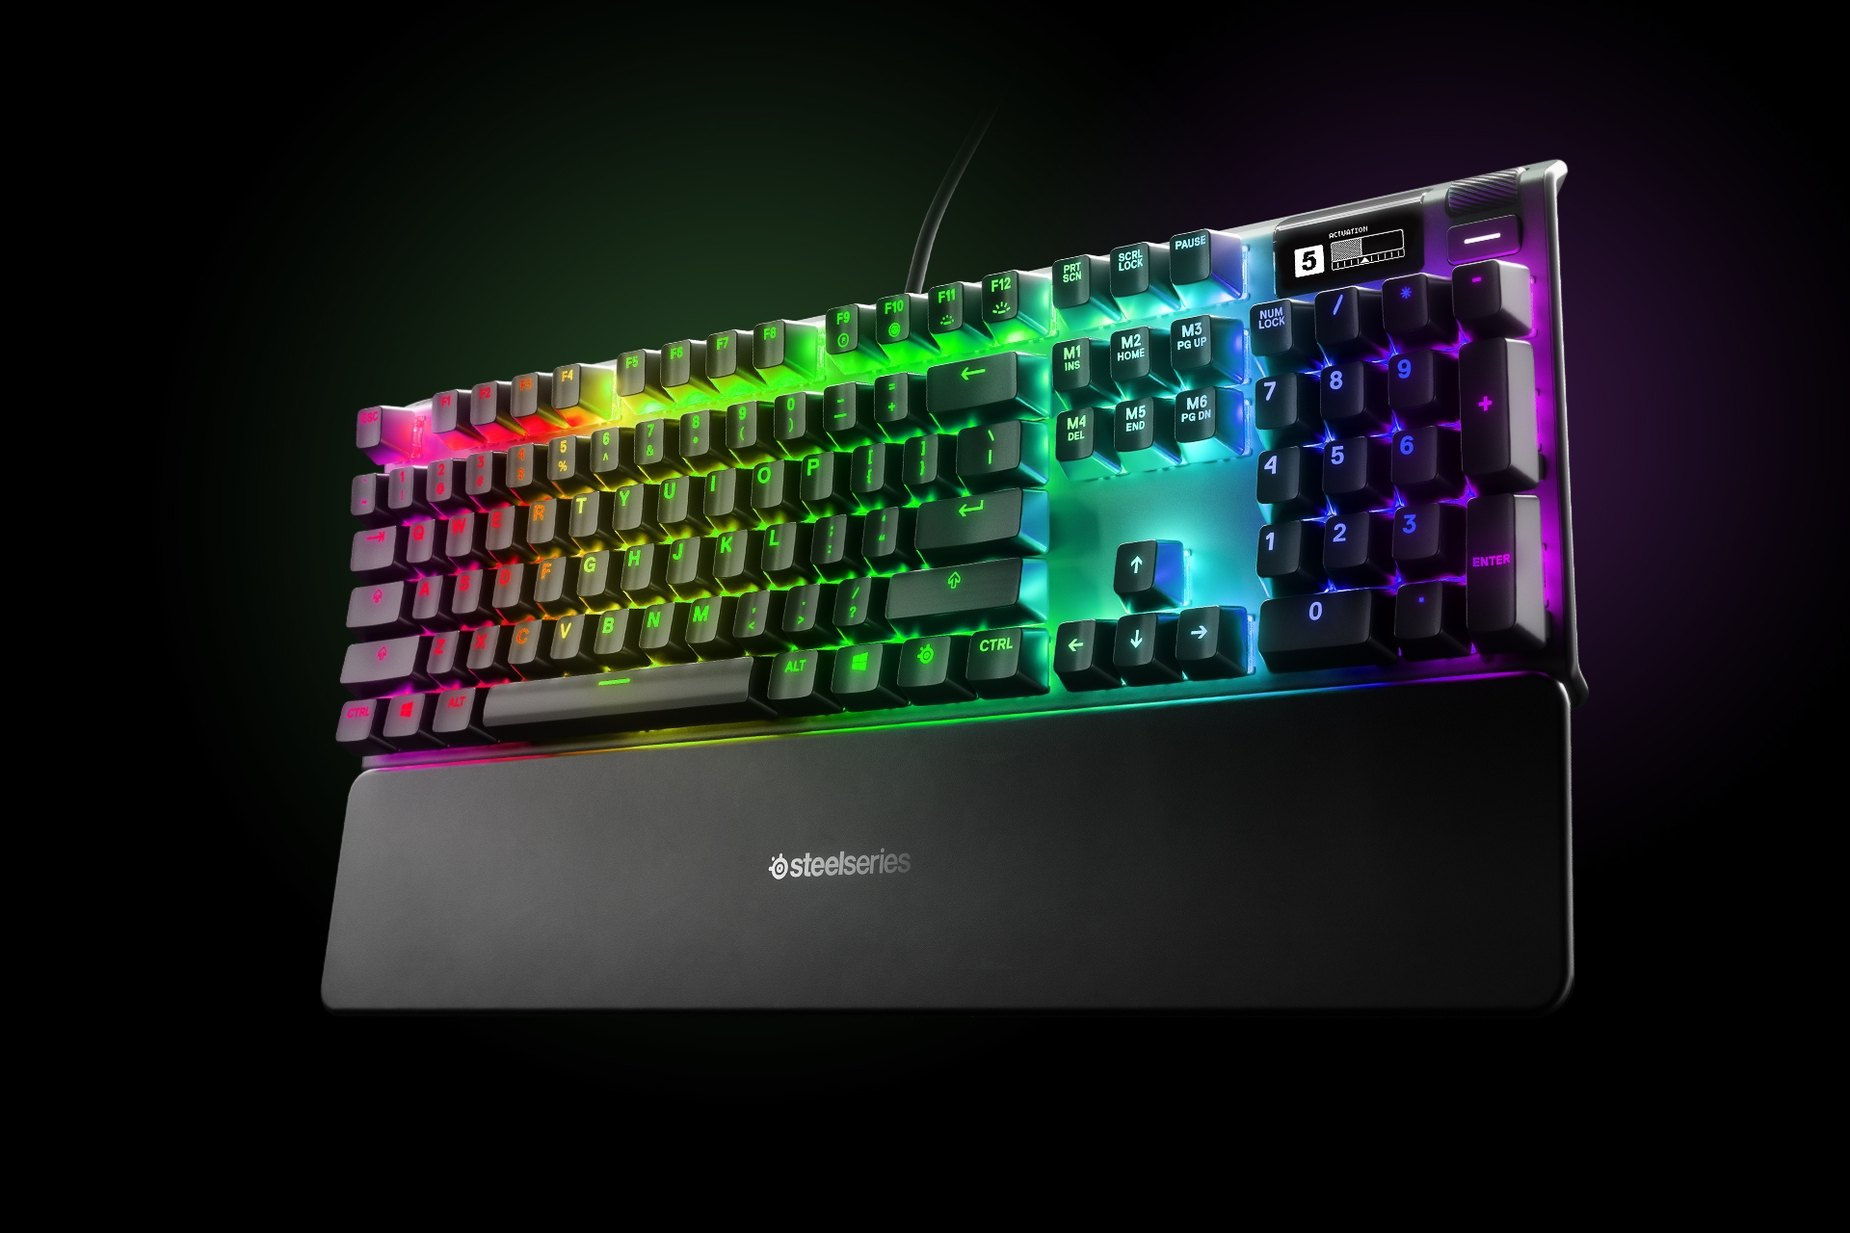 Nordik - Apex Pro gaming keyboard with the illumination lit up on dark background, also shows the OLED screen and controls used to change settings, switch actuation, and adjust audio